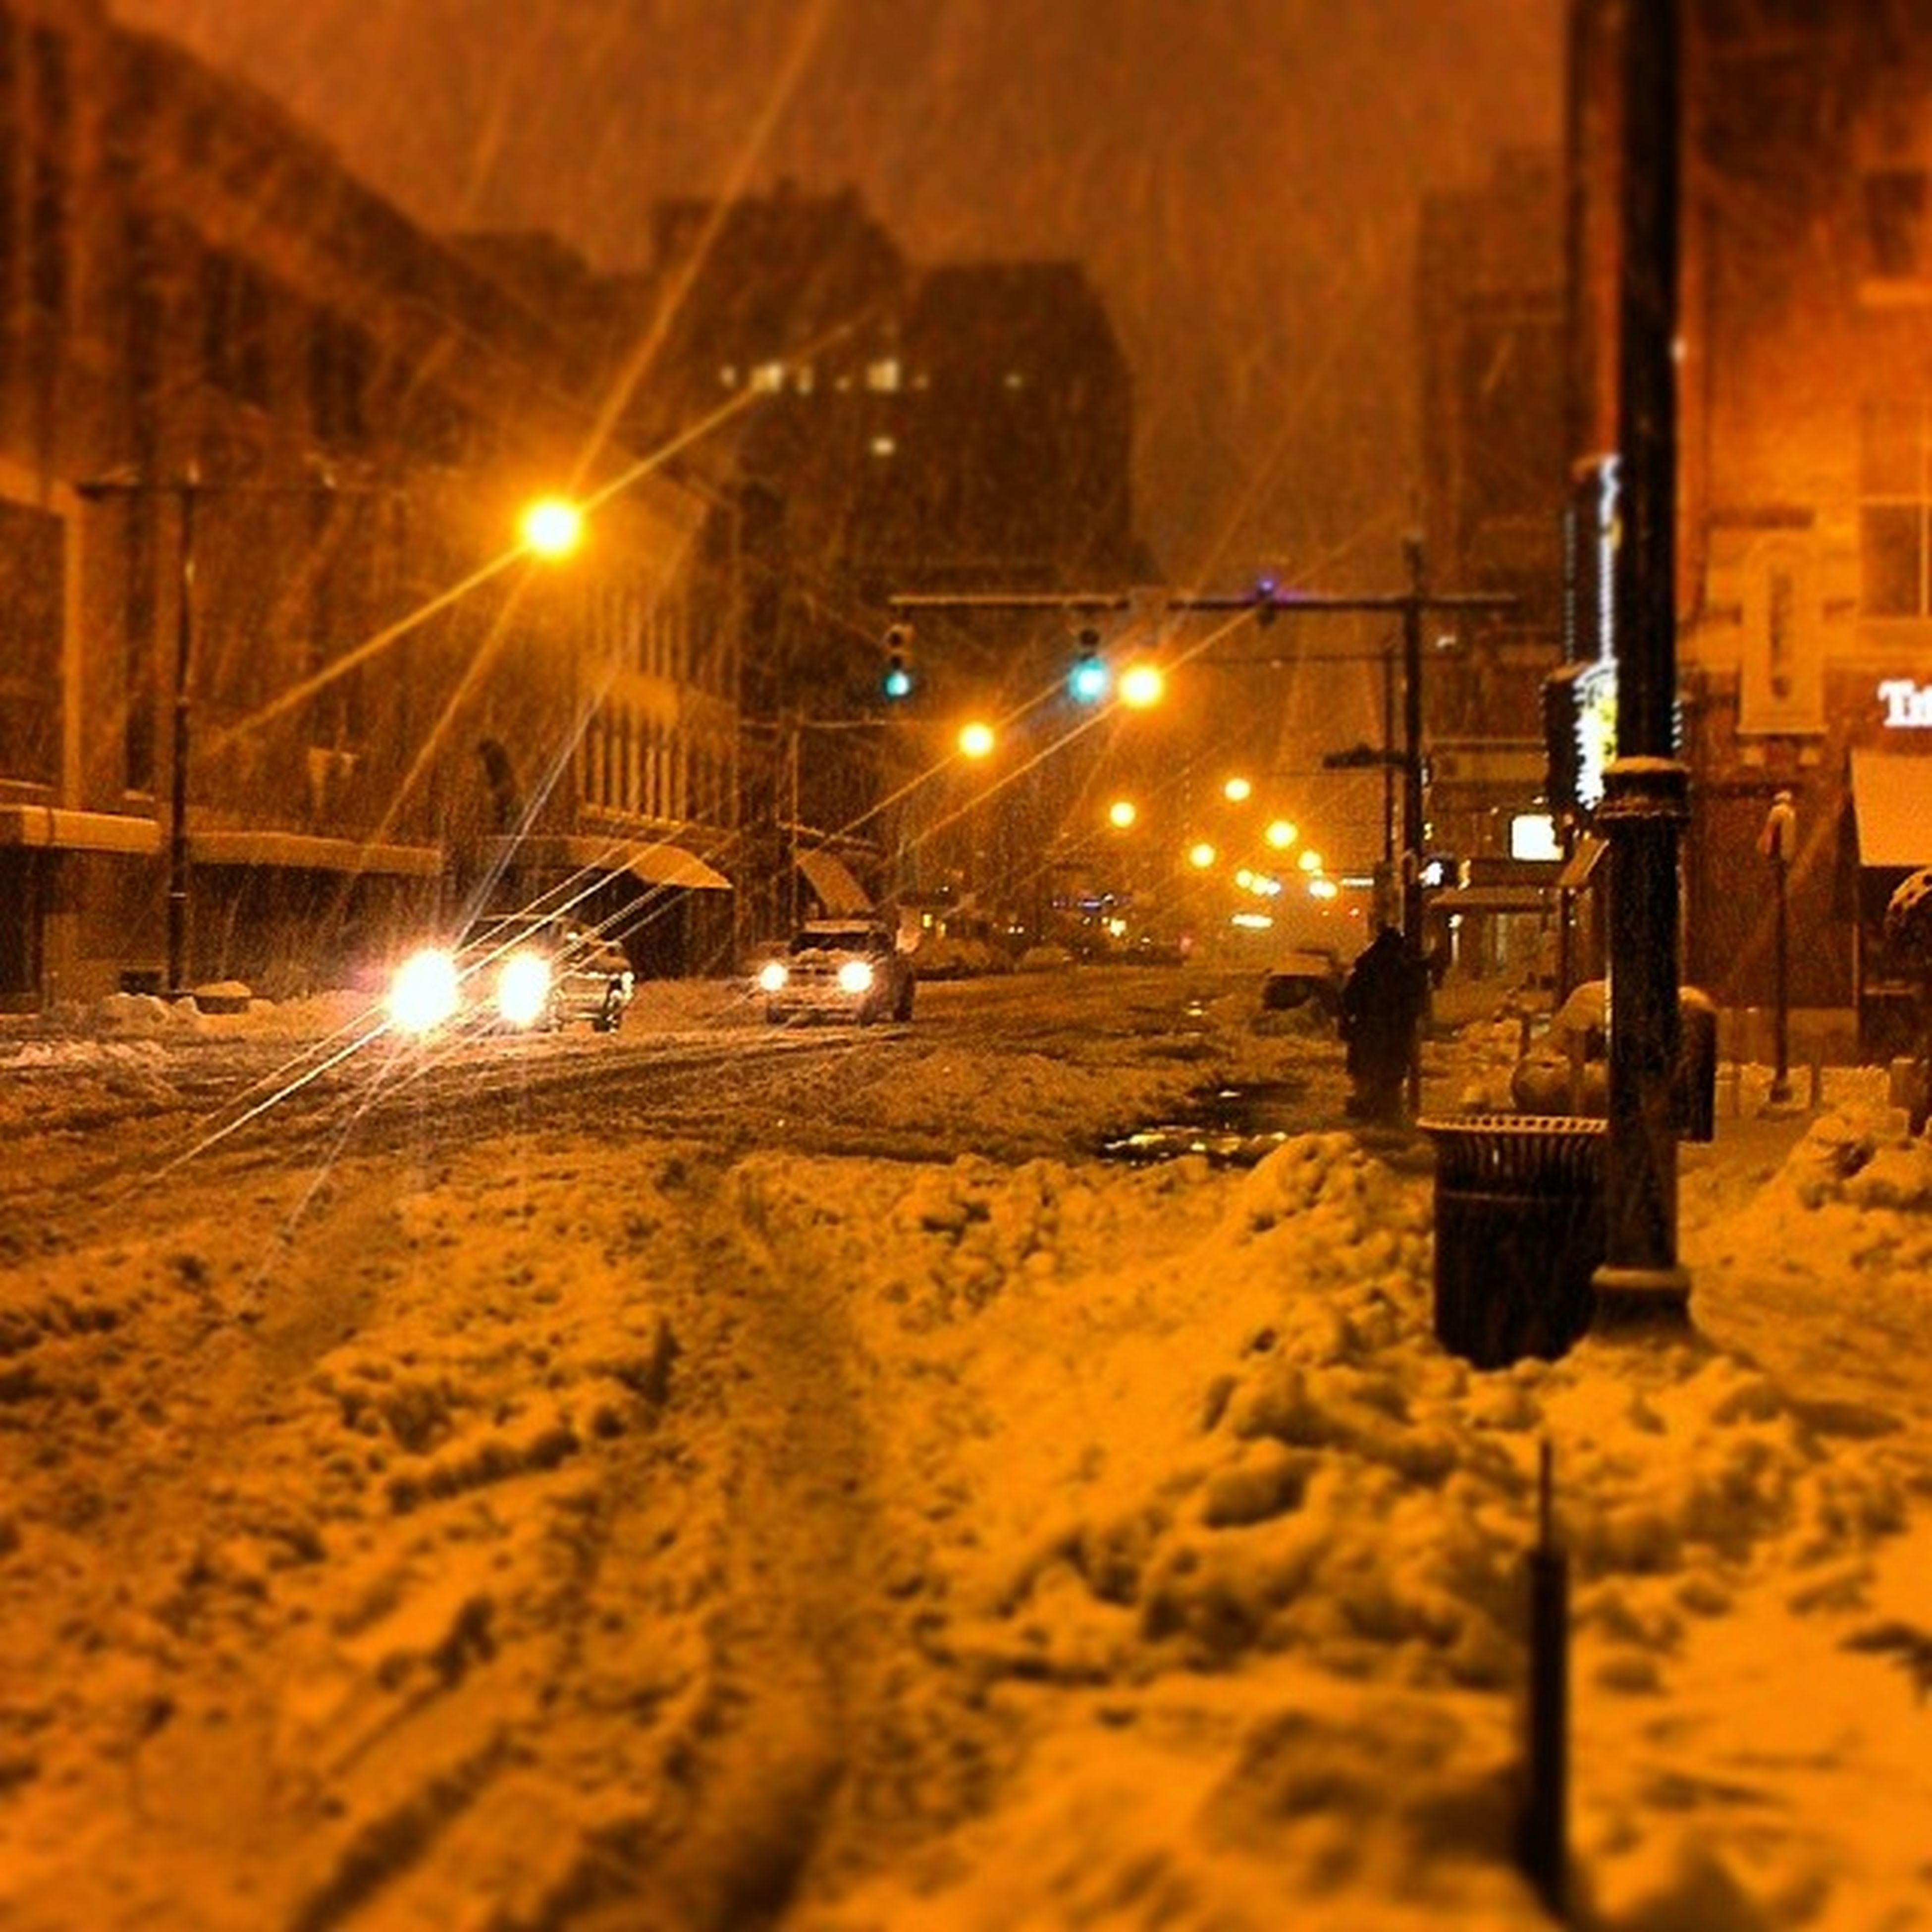 illuminated, transportation, night, street light, mode of transport, built structure, street, land vehicle, lighting equipment, architecture, building exterior, car, city, outdoors, road, snow, surface level, weather, season, no people